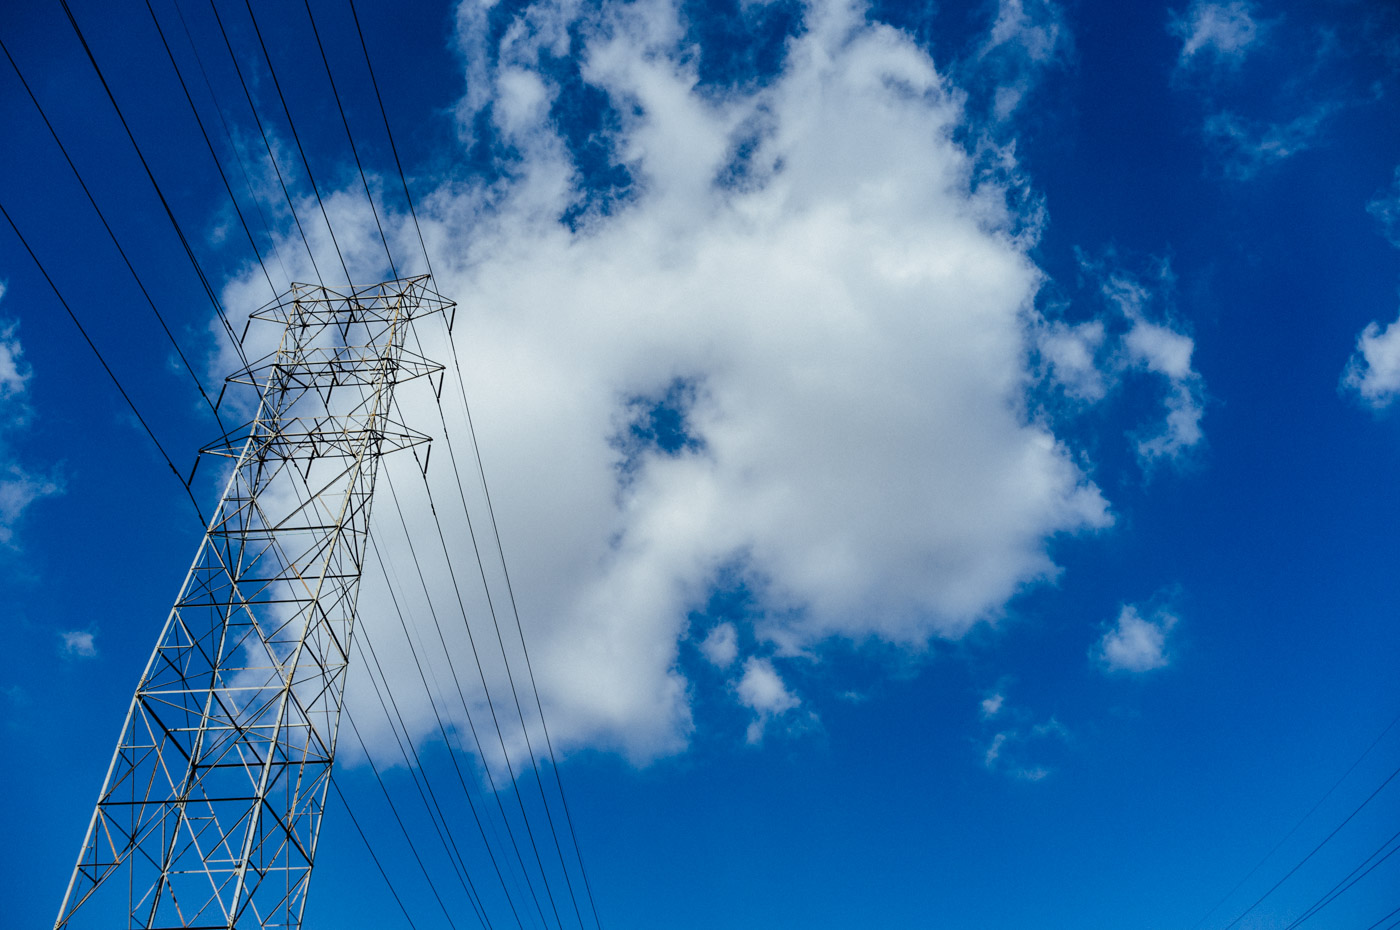 A cloud stuck in the power lines - Let's Photo Trip L.A. River